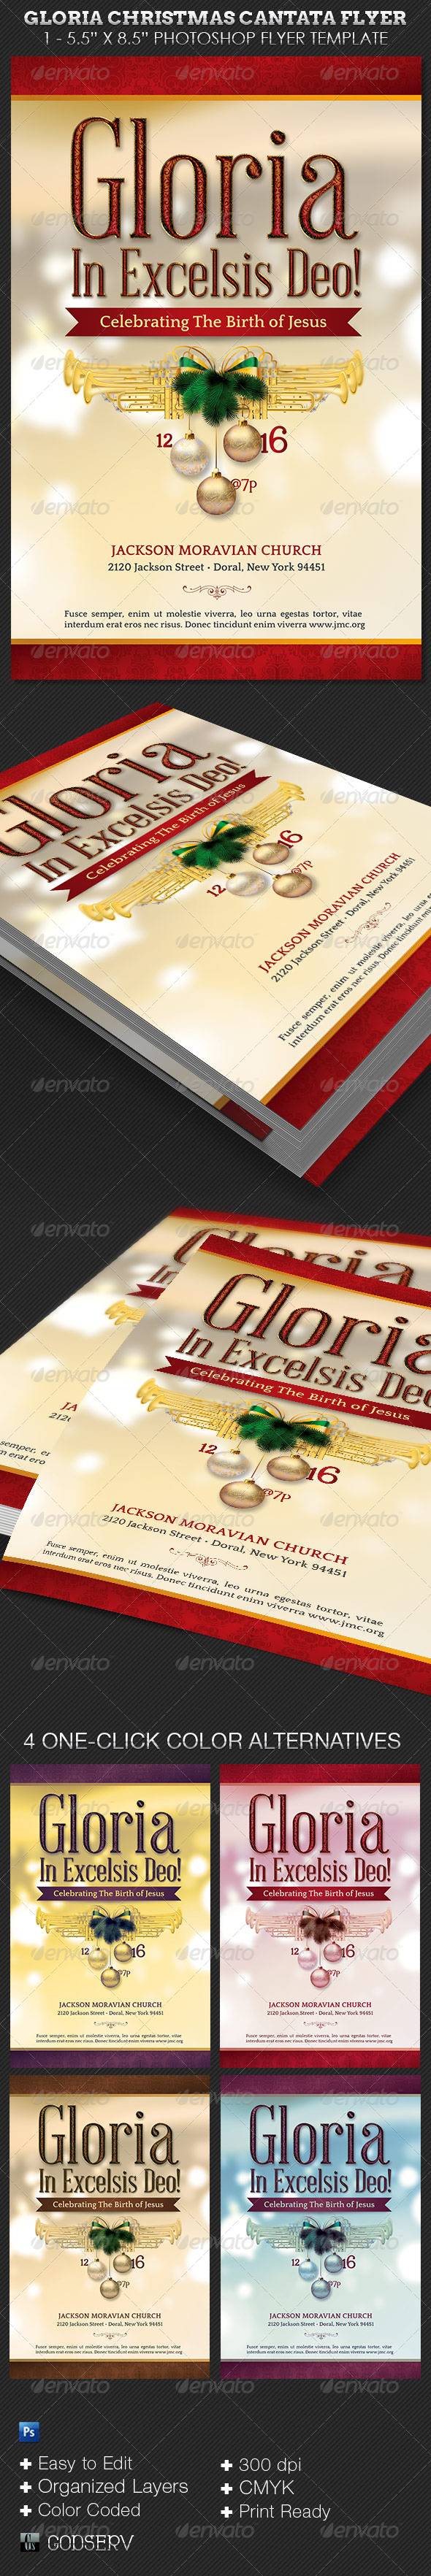 GraphicRiver Gloria Christmas Cantata Flyer Template 6384139